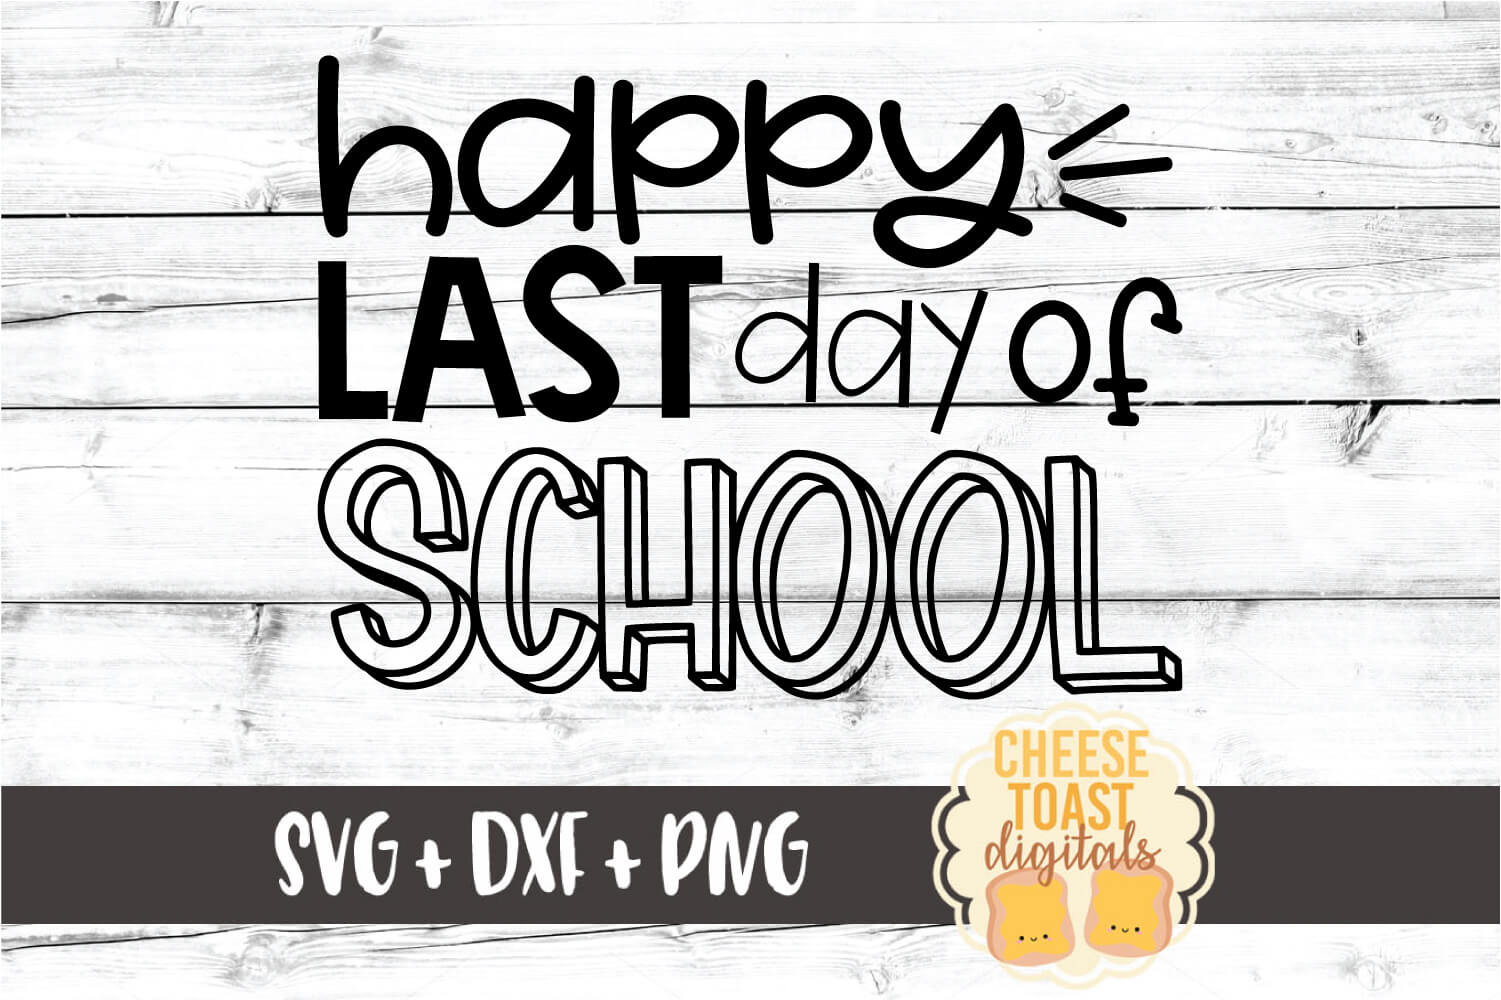 Happy Last Day of School - Graduation SVG PNG DXF Cut Files example image 2